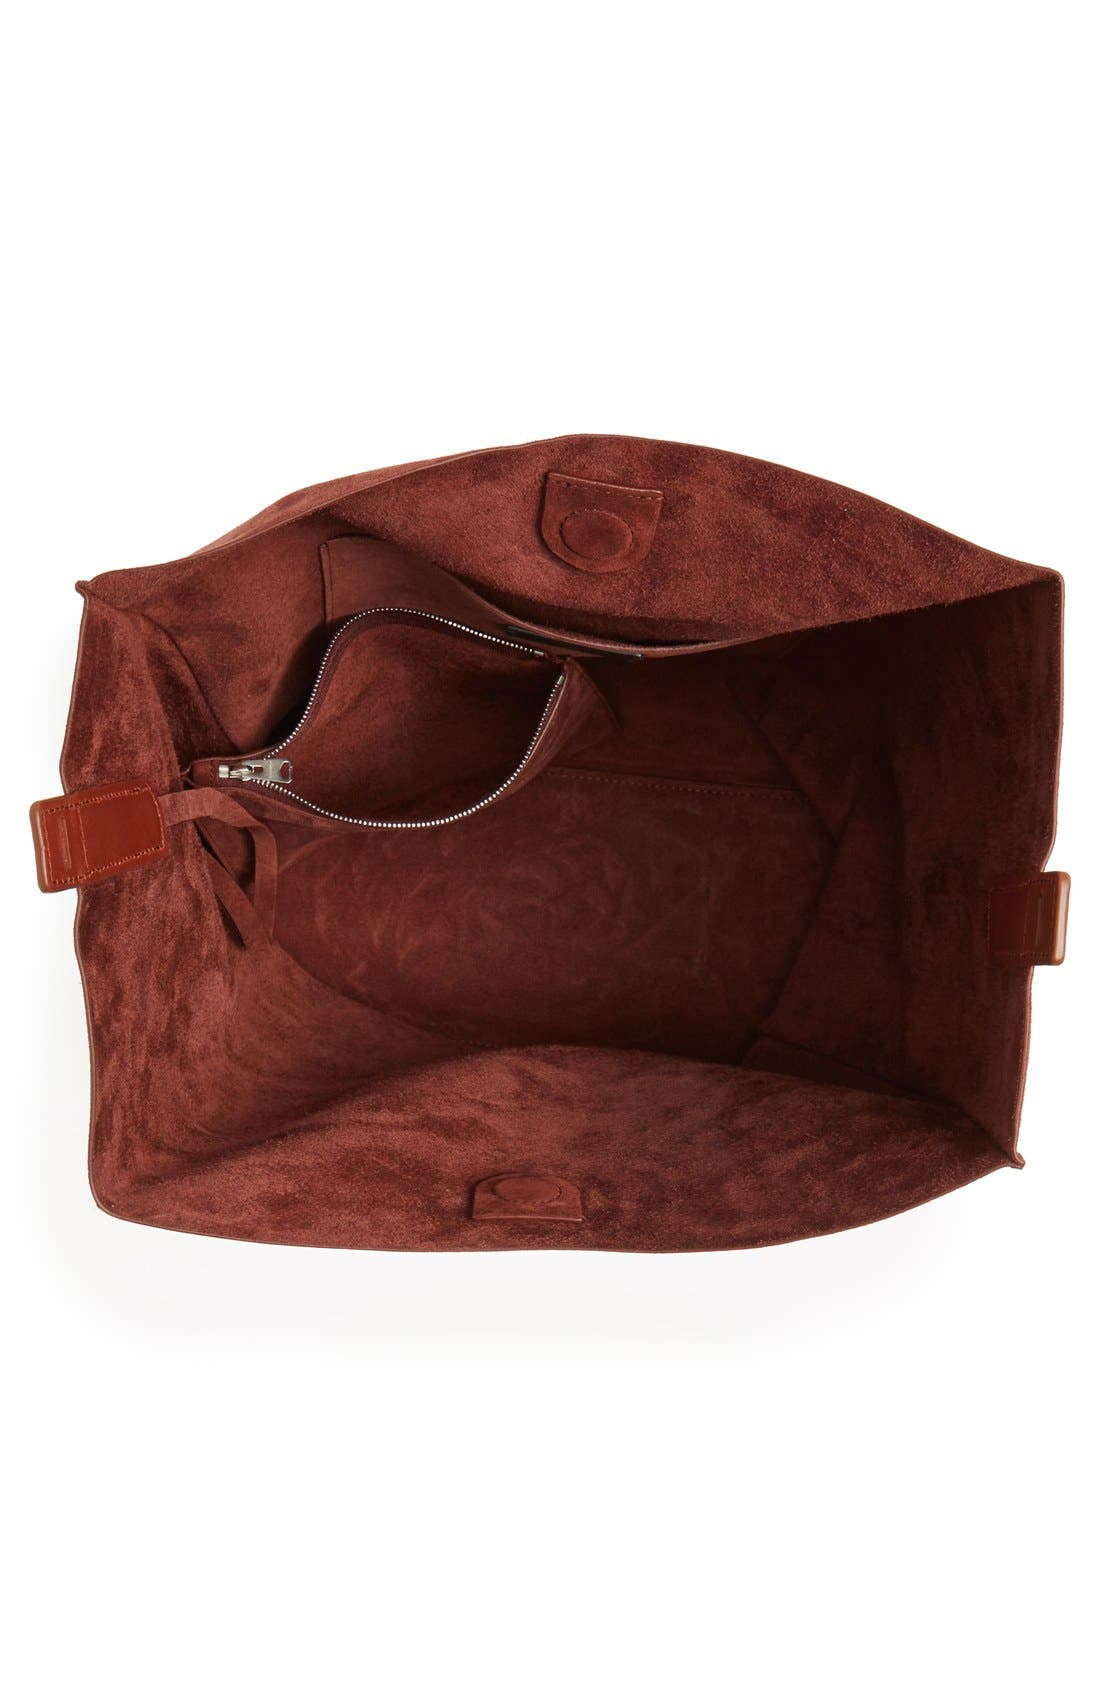 'Paradise - North/South' Suede Tote,                             Alternate thumbnail 4, color,                             Brandy/ Brick Brown